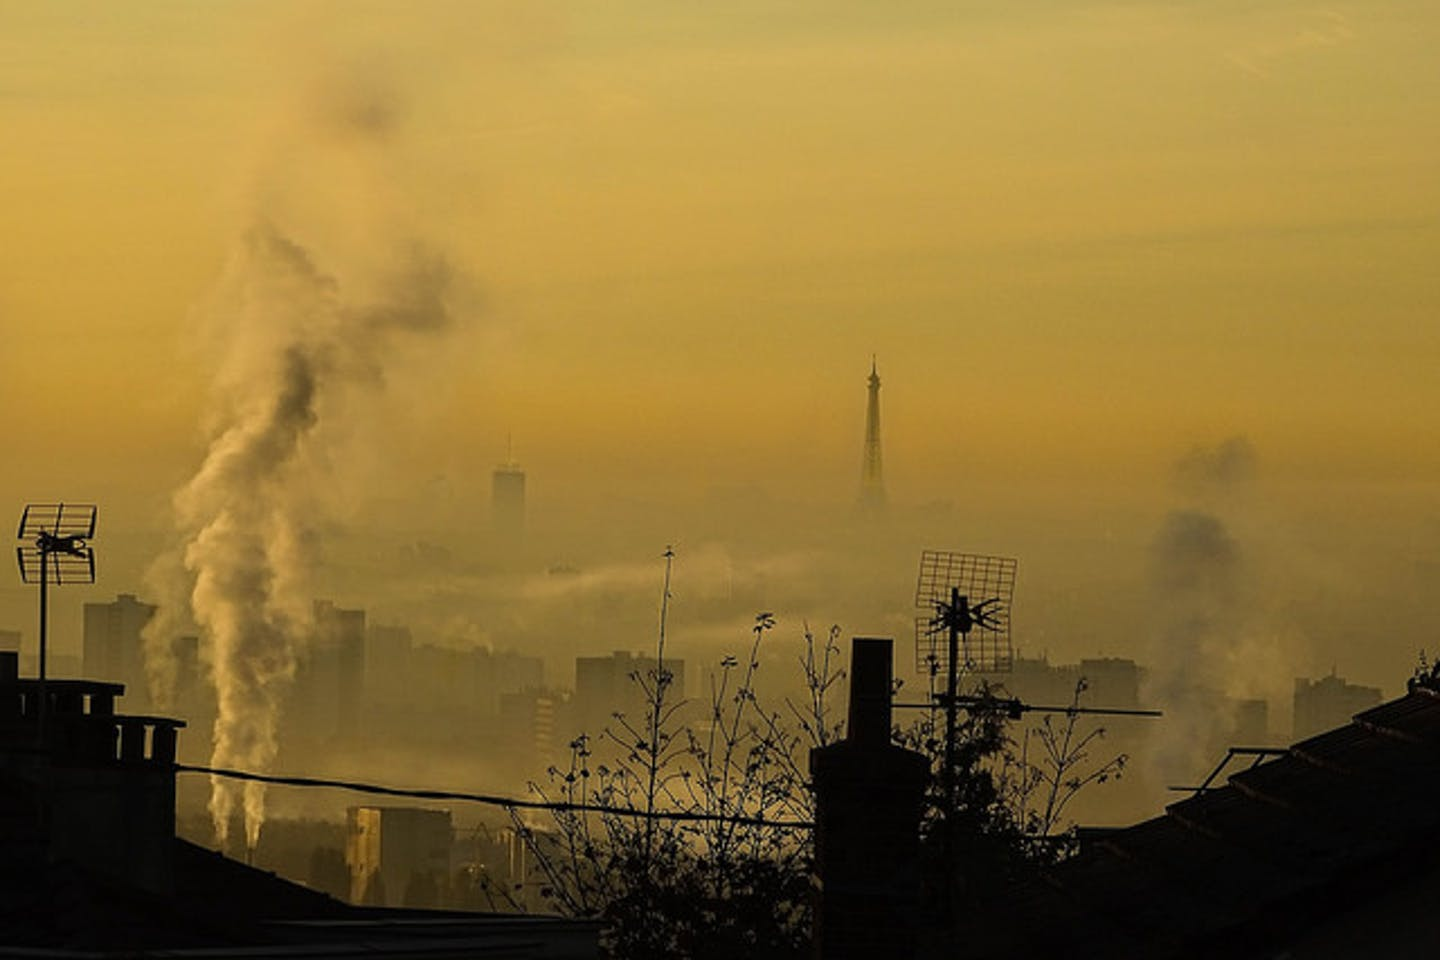 Eiffel Tower blanketed by pollution